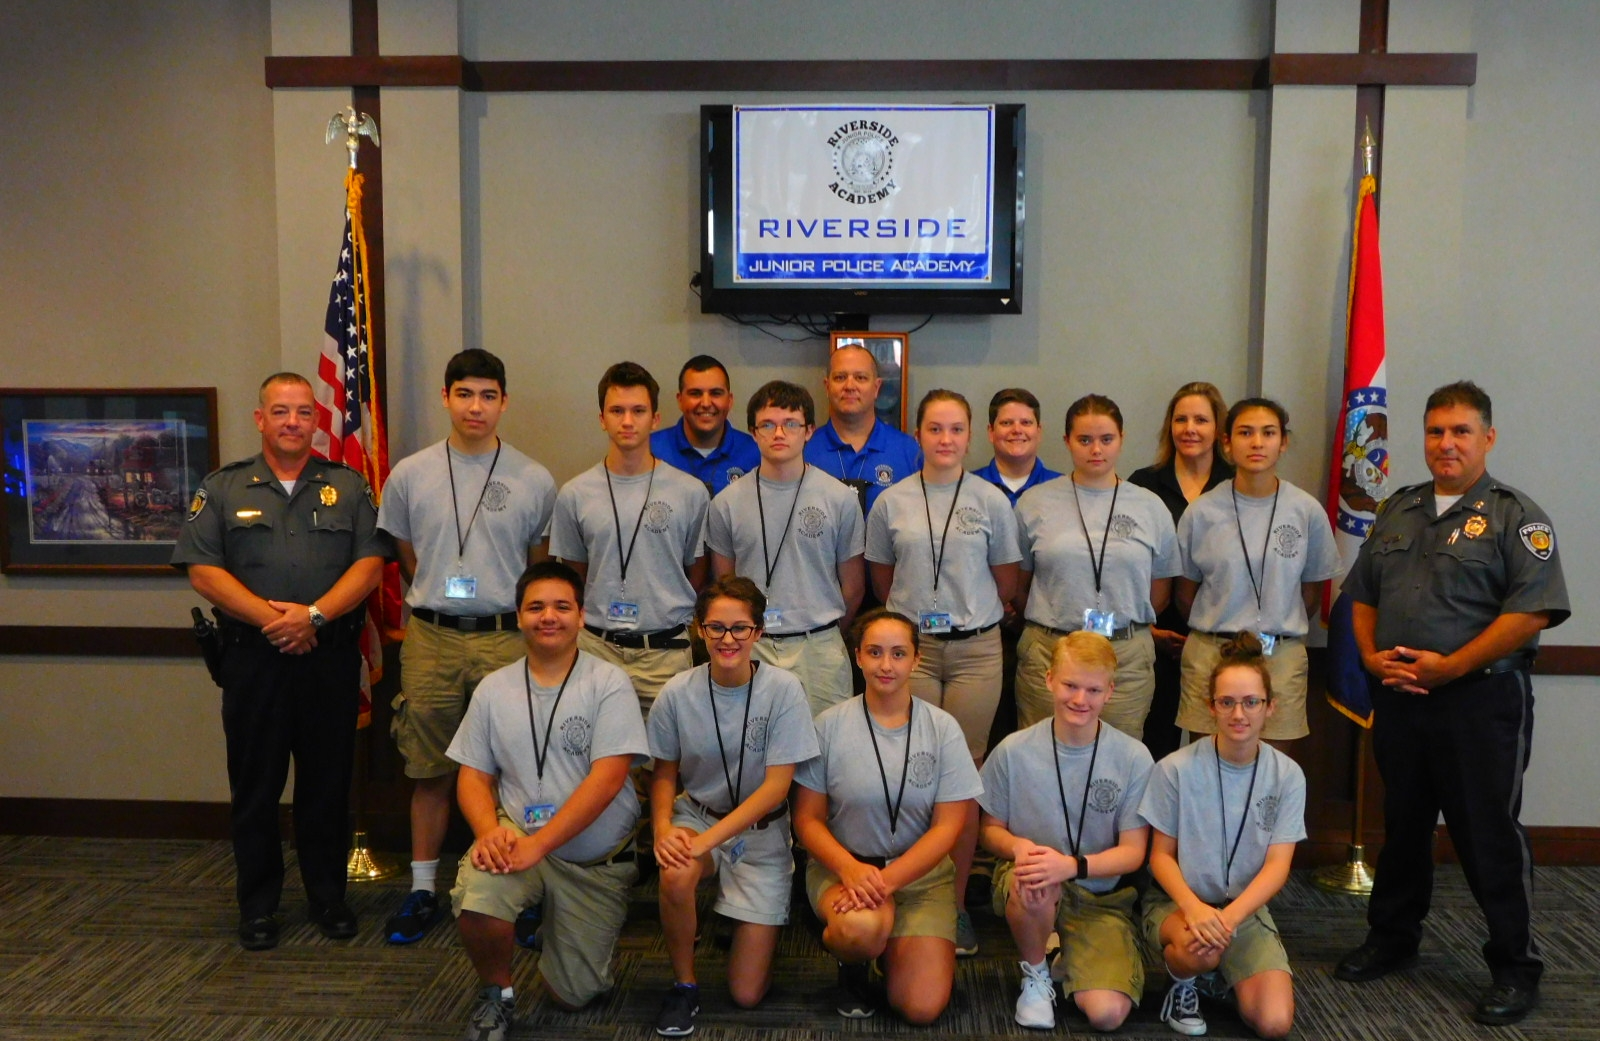 Contributed photo The first Riverside Junior Police Academy Class posed for a photo on the final day of classroom training. The group included front row, from left: Trevor Hall, Chloe Morales, Alanie Hacker, Conner Addington, Clara Lazen; second row, from left, Riverside Police chief Chris Skinrood, John Tovar, Nathan Stump, Thomas Marple, Nicole Wilson, Kyra Rawlings, Isabel Fabian, captain Mike Costanzo and back row, from left, officer Noah Gibler, officer Matt Westrich, corporal Cari Terpening and Holly Phillips.